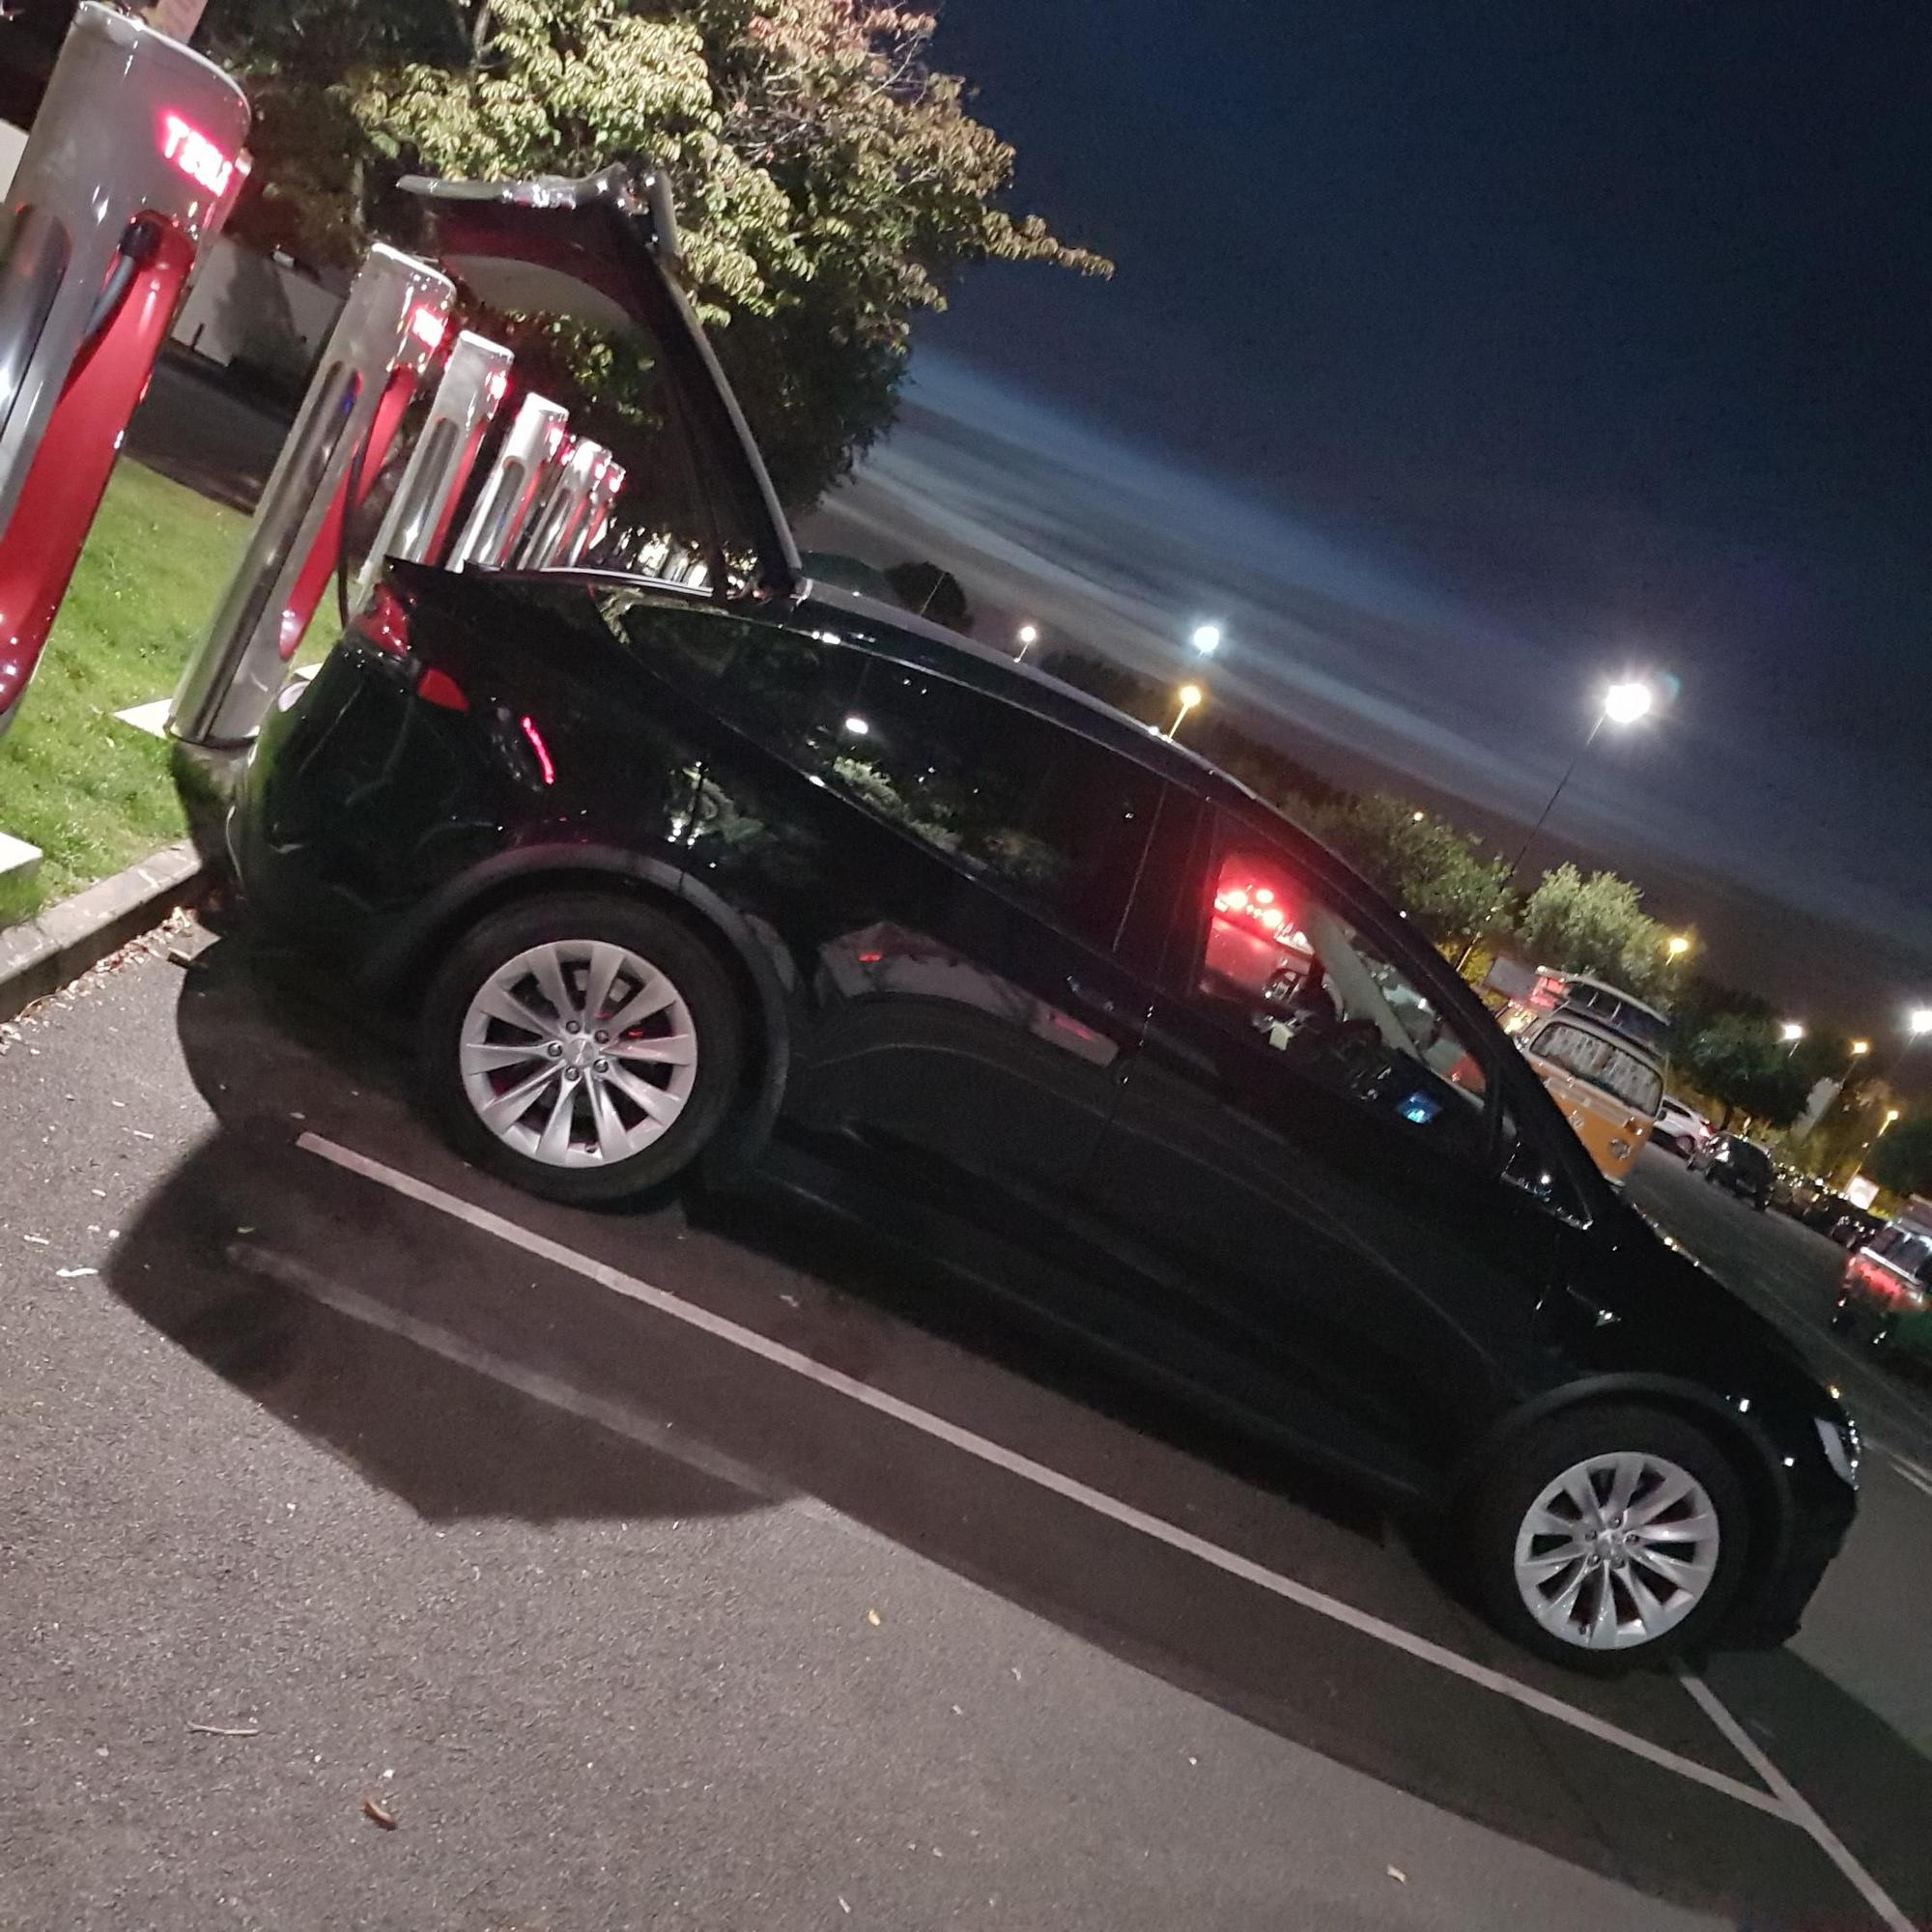 Bristol - Gordano Supercharger - Free DC Fast Electric Car Charging - 55 Check-ins 11 Photos - M5 Motorway, Jct 19, Portbury, Bristol, North Somerset BS20 ...